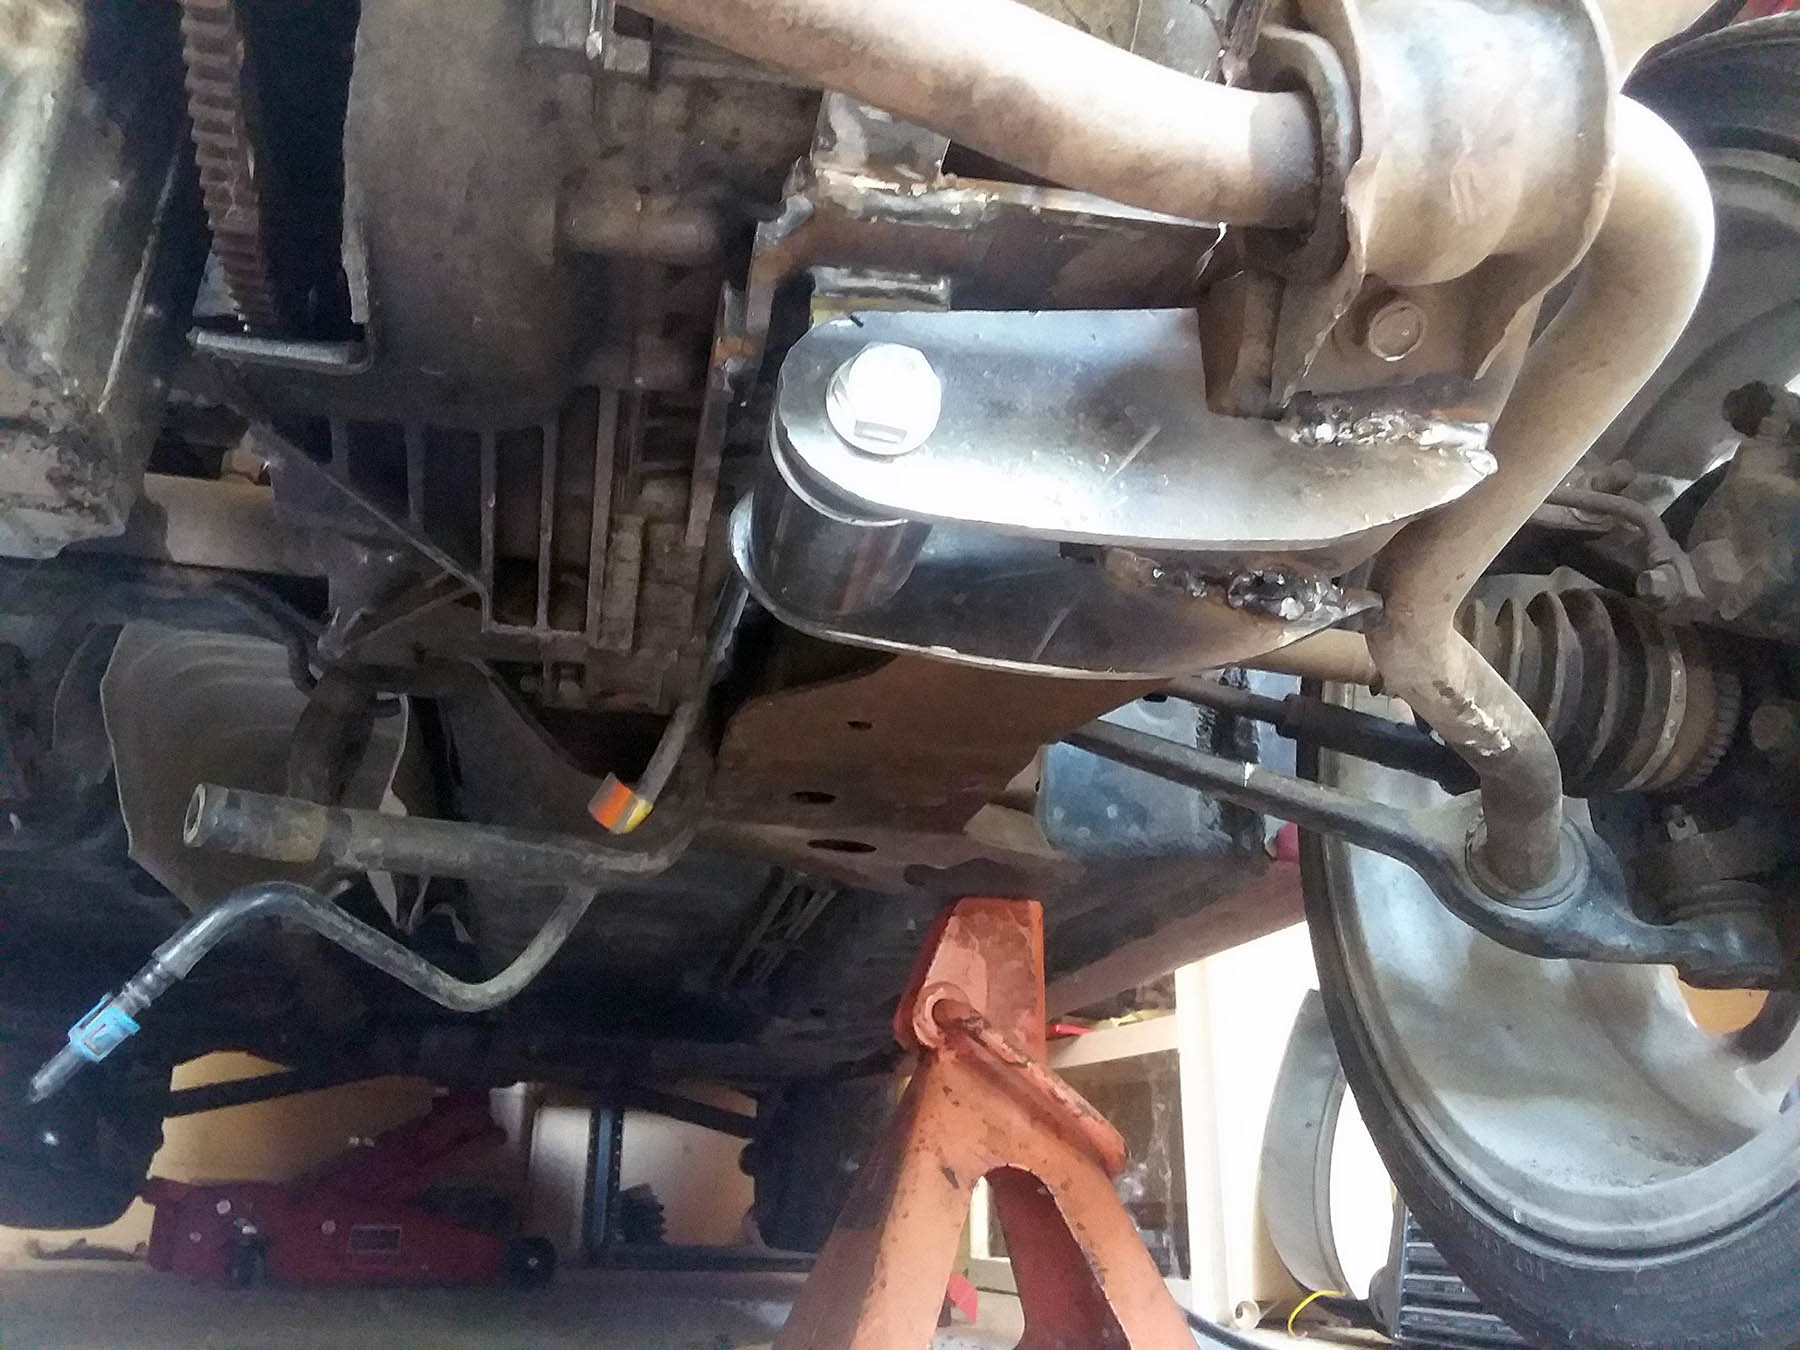 Building a 1997 Saturn SC2 with a Turbo 3800 V6 – Engine